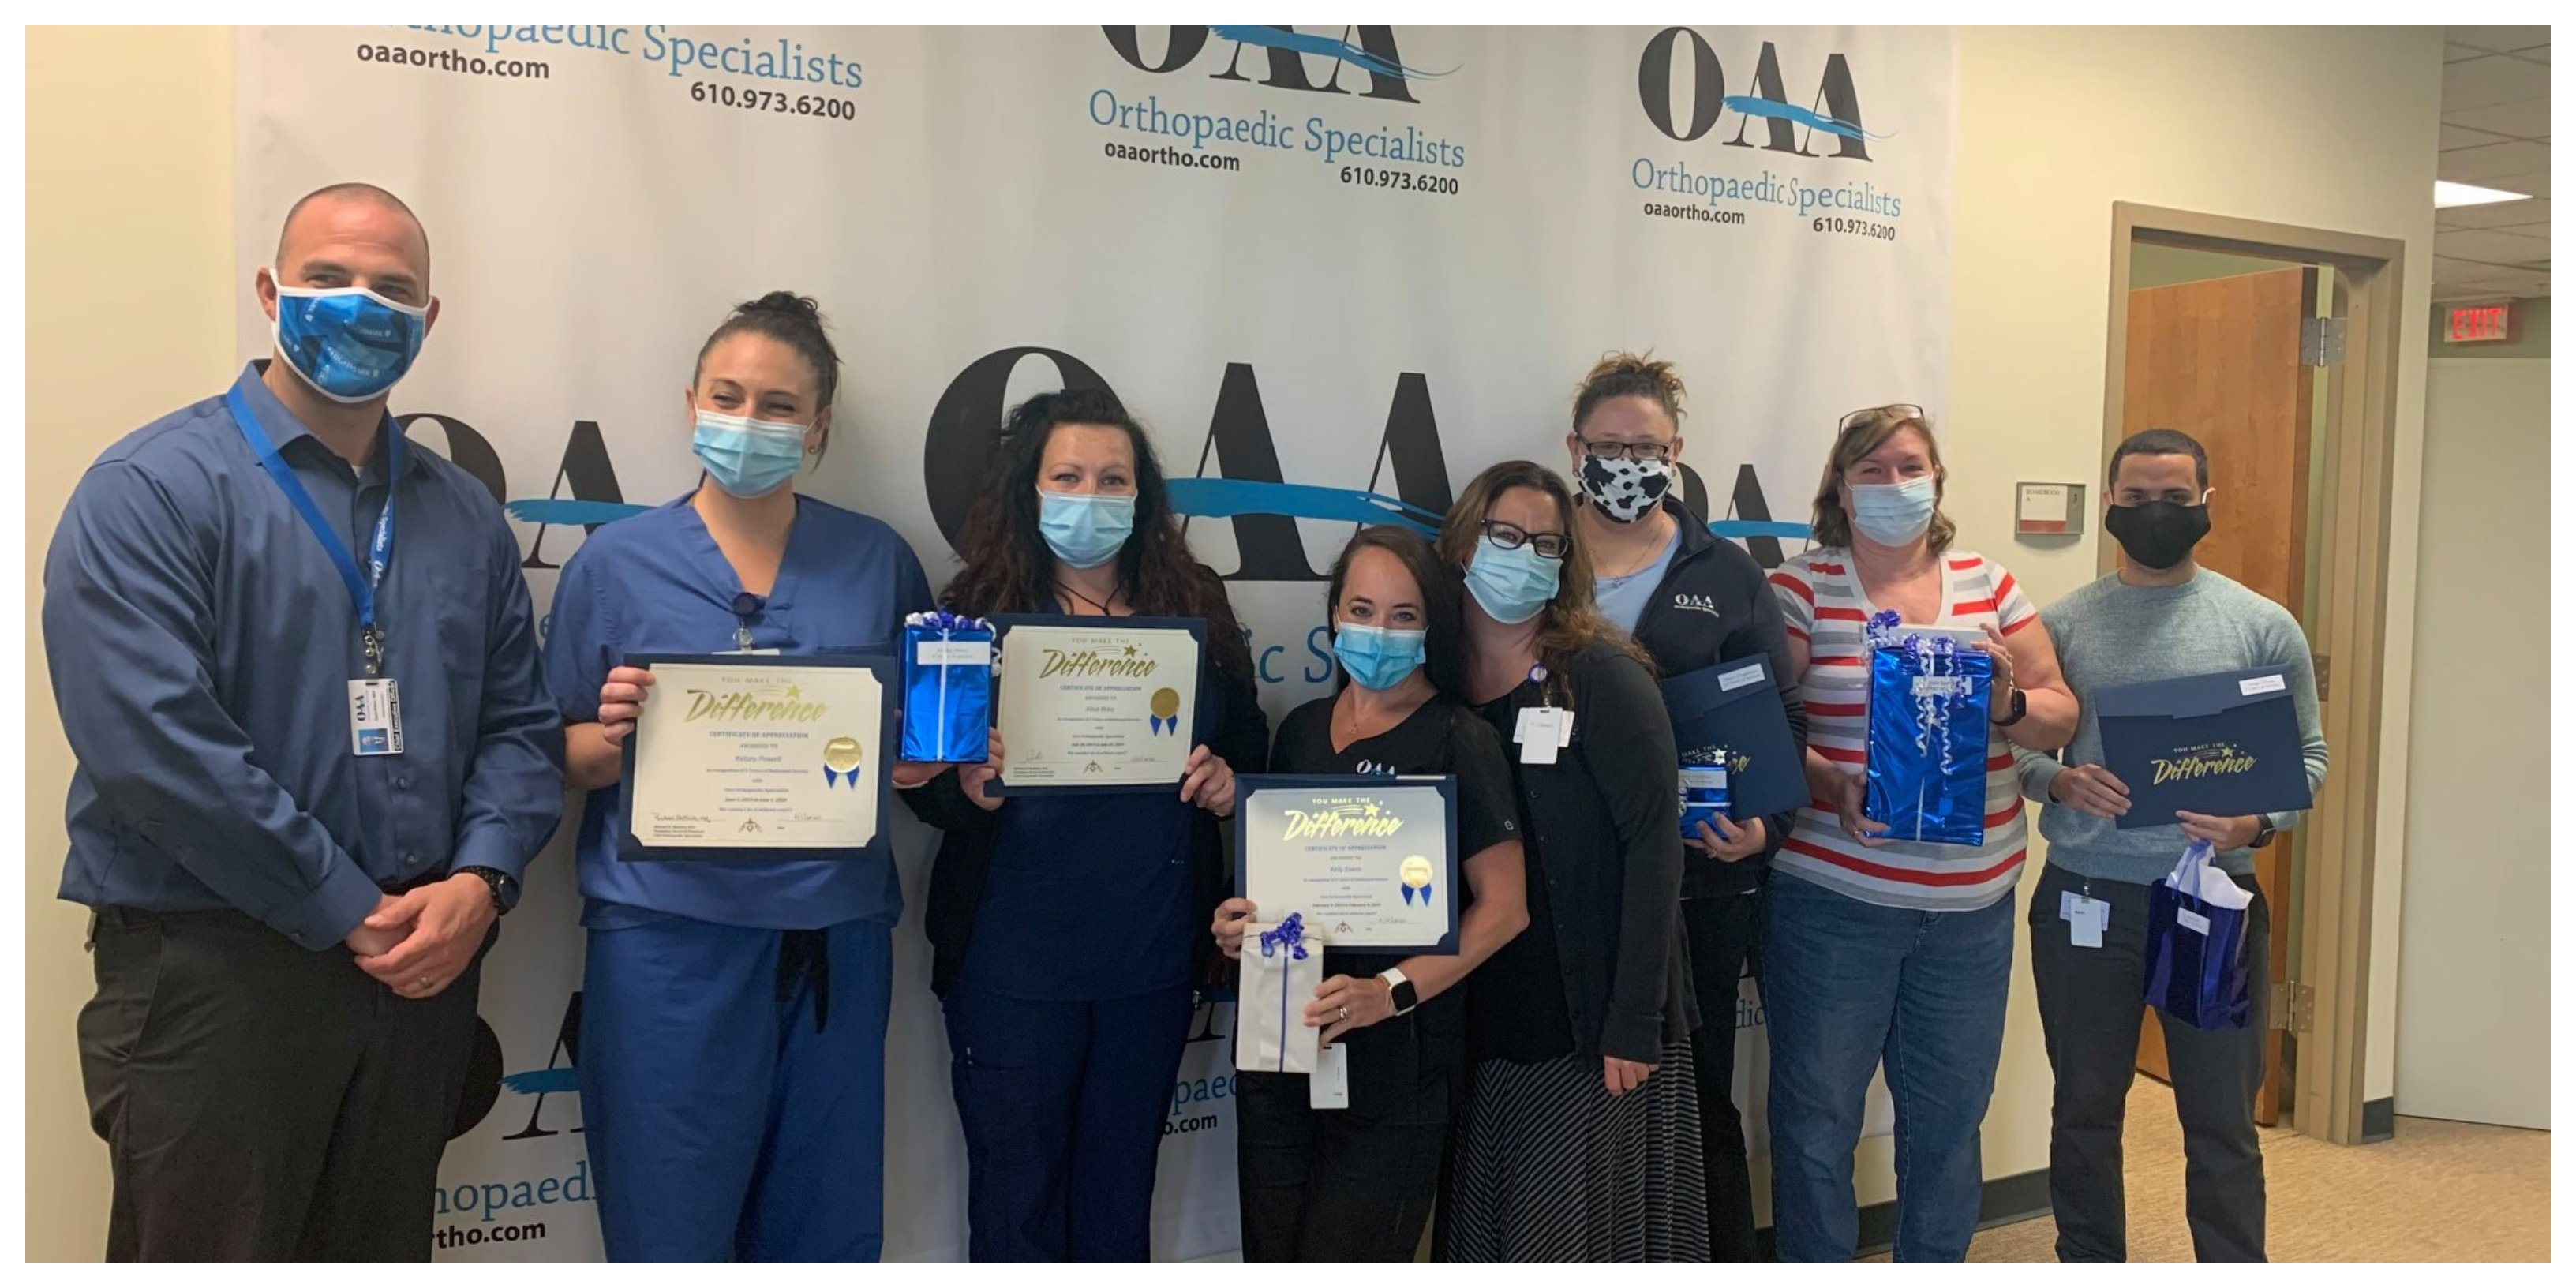 People in Masks Holding Difference Certificates